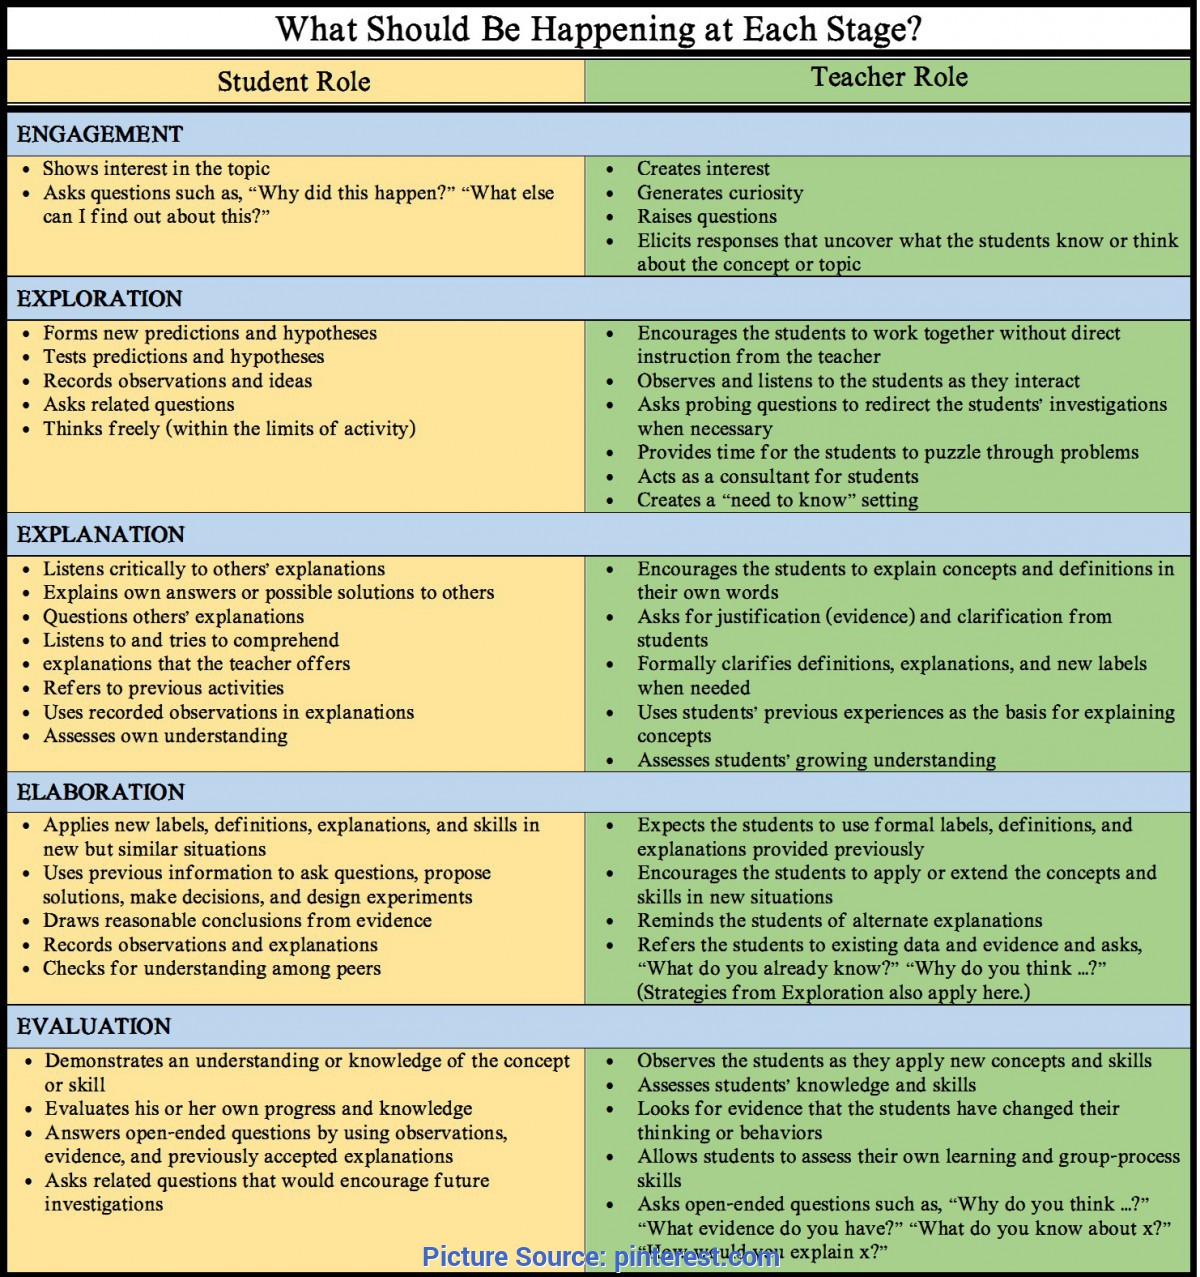 Useful 5E Model Of Teaching The 5E Instructional Model - Why You Should Be Using In You